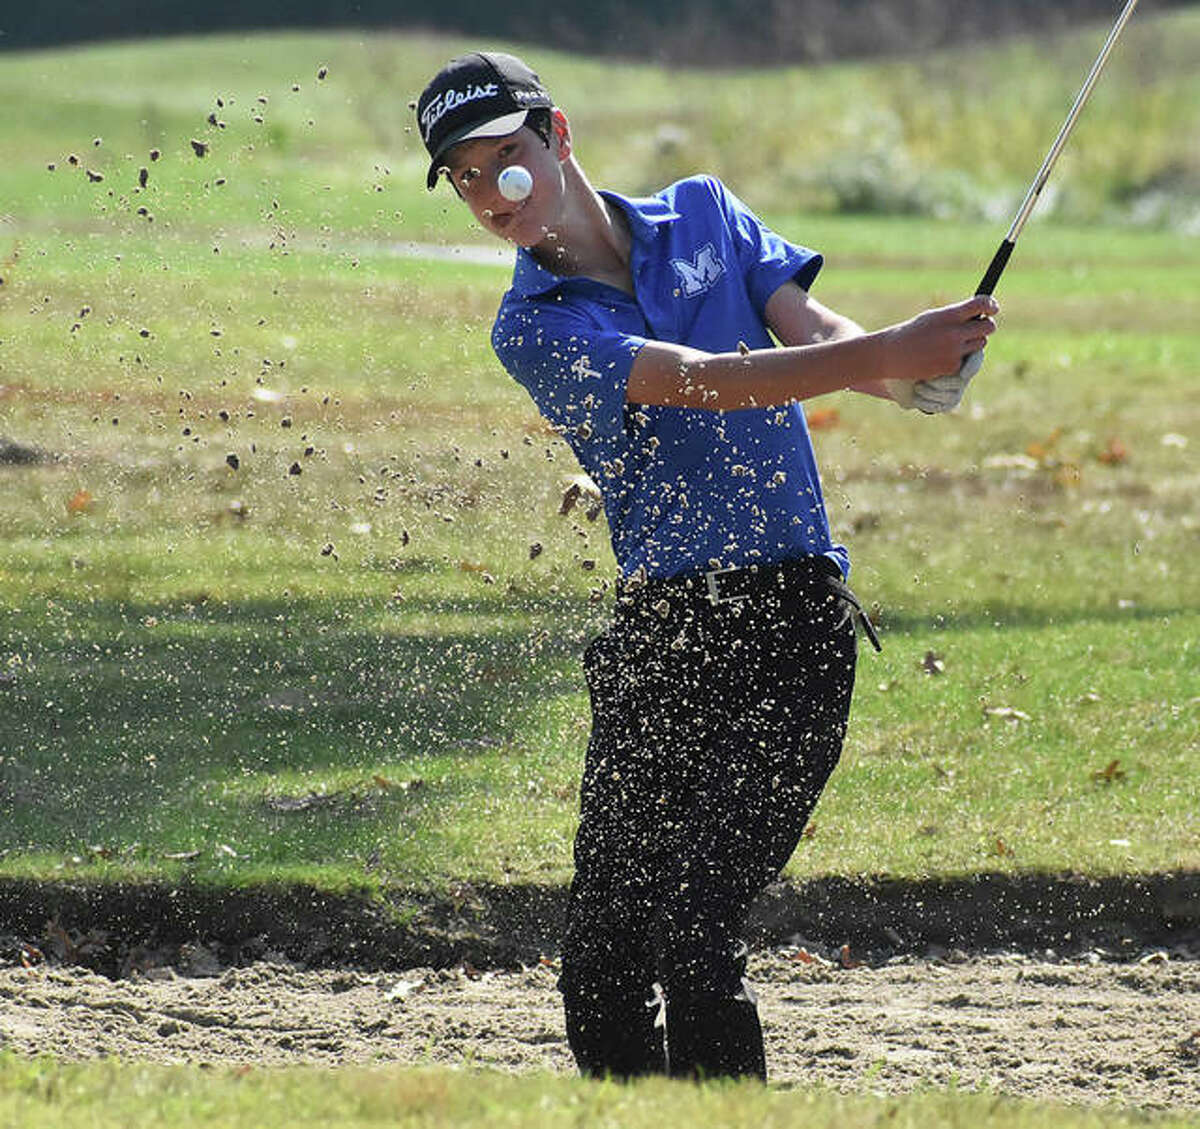 Marquette Catholic's Aidan O'Keefe chips out of the sand during a Class 1A regional last season at Timber Lakes golf course in Staunton. O'Keefe, now a junior, and the Explorers be part of the 16-team field opening their 2021 boys golf season Monday in EA-WR's Hickory Stick Invitational at Belk Park in Wood River. Mascoutah will be back to defend the championship it won in 2020, along with the return of Hillsboro following a year's absence because of covid travel restrictions last season. The Hiltoppers won three successive Hickory Stick titles from 2017-19. The rest of the field includes Civic Memorial, Father McGivney, Jersey, Metro-East Lutheran, Mount Olive, Roxana, Southwestern, Triad, Vandalia, Dupo, Granite City, Litchfield and the host Oilers. The tourney begins with a shotgun start at 8:30 a.m.